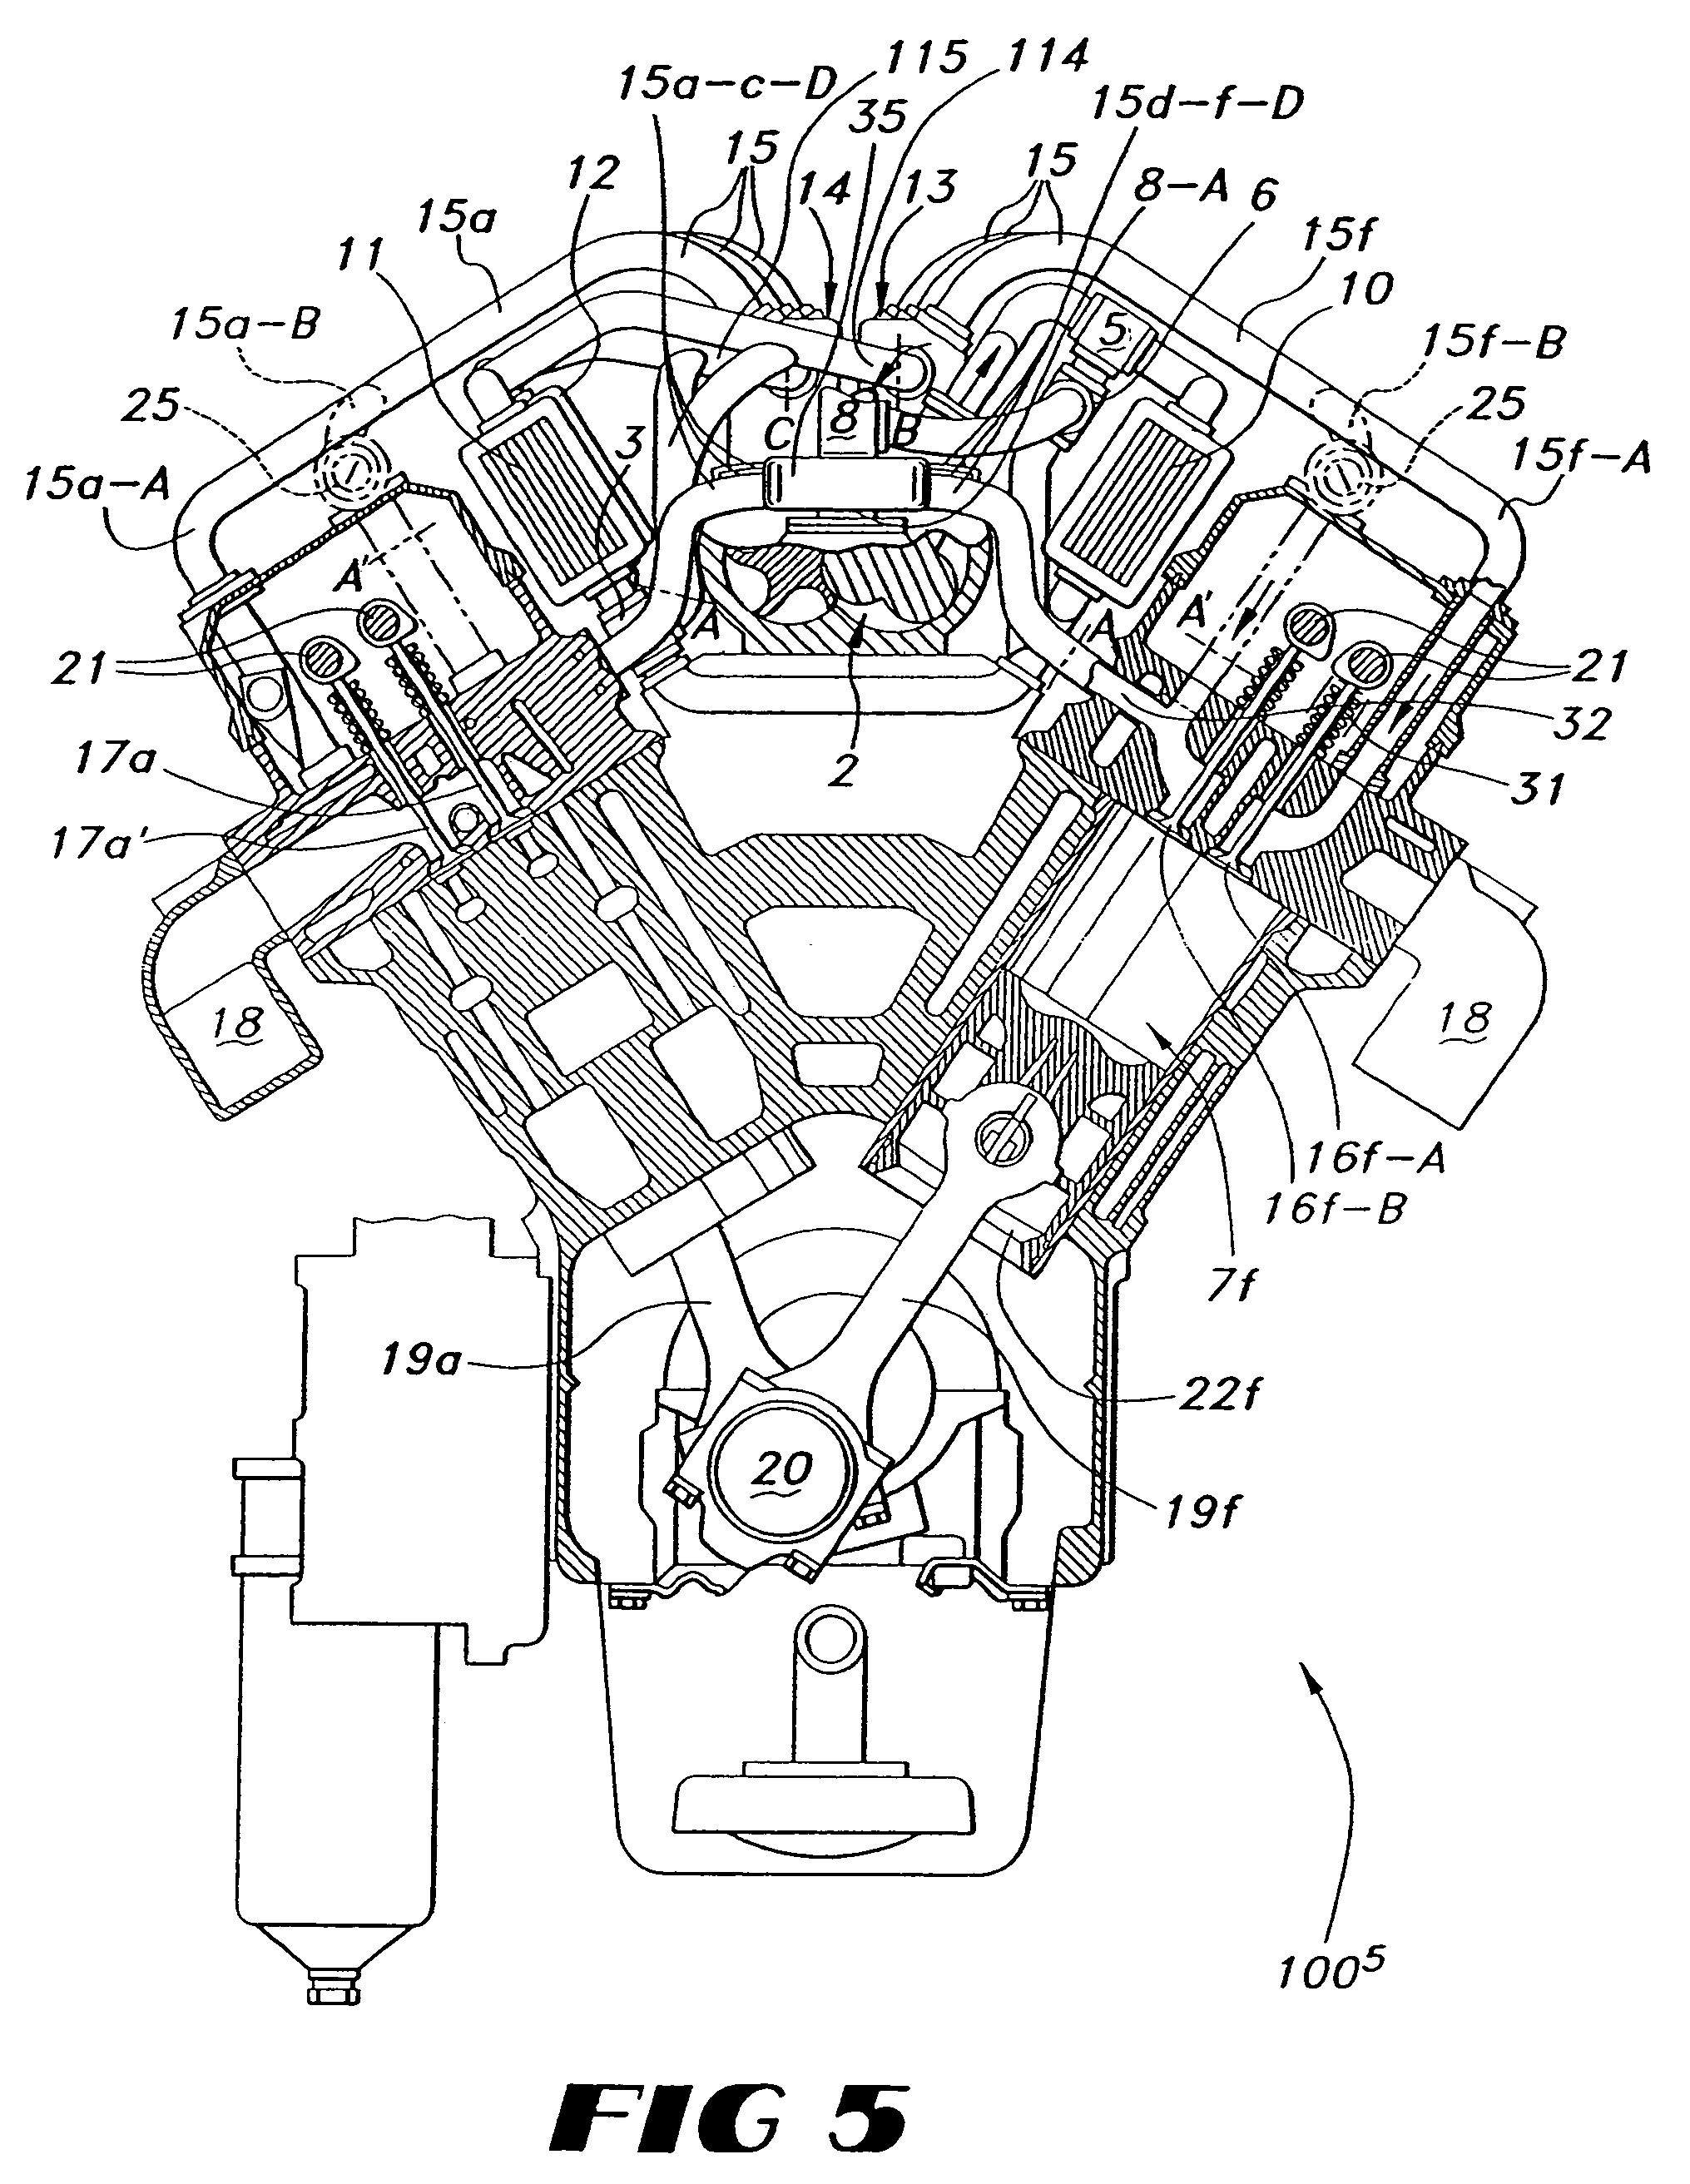 Valve Timing Diagram For Four Stroke Engine besides E3 82 B5 E3 82 A4 E3 83 89 E3 83 90 E3 83 AB E3 83 96 besides Four Stroke Cycle Diesel Engines in addition Repair And Service Manuals in addition US7222614. on four cycle engine operation